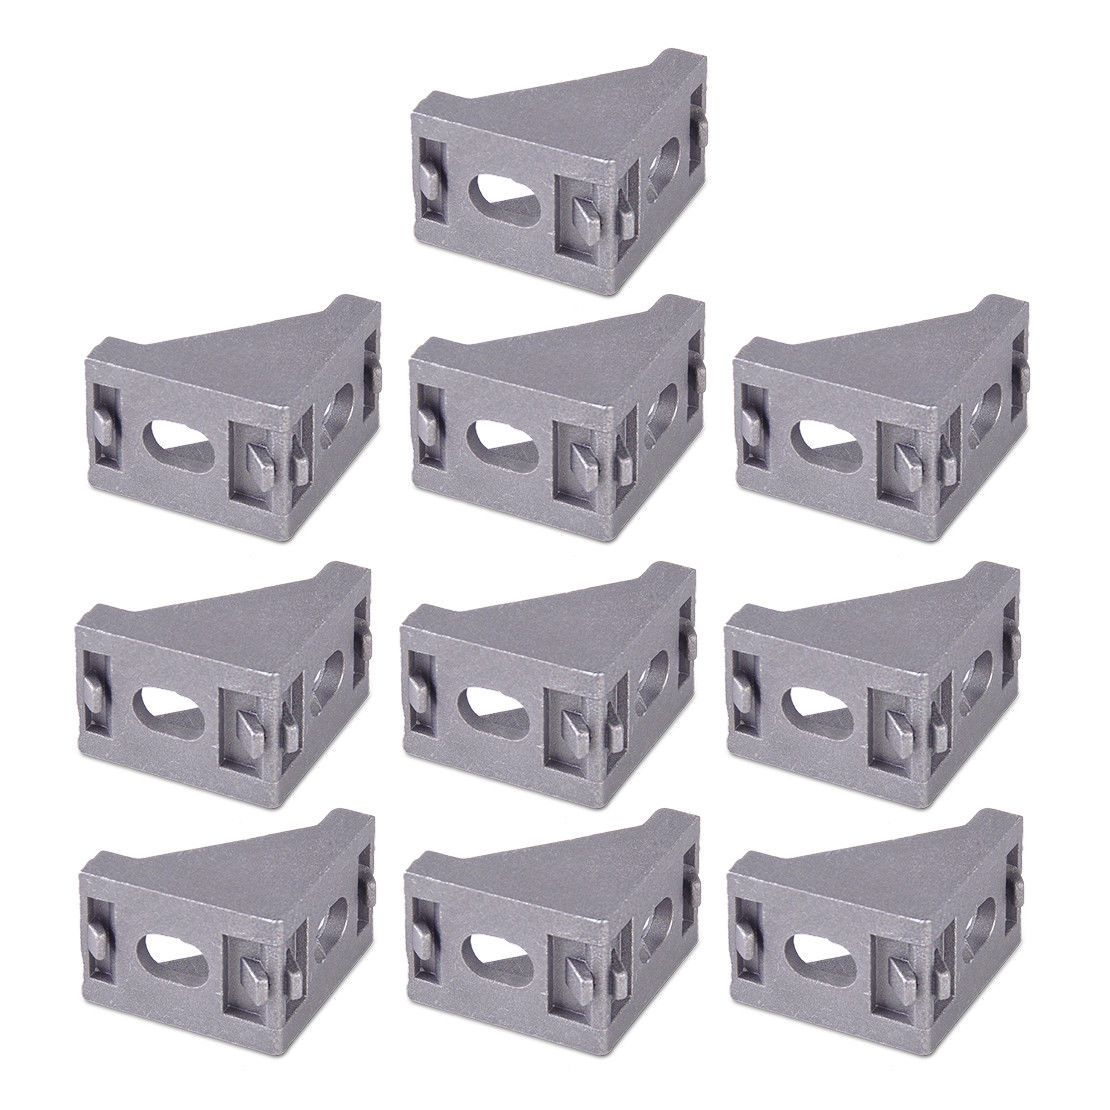 10Pcs Aluminum L Shape Corner Brace Joint Right Angle Shelf